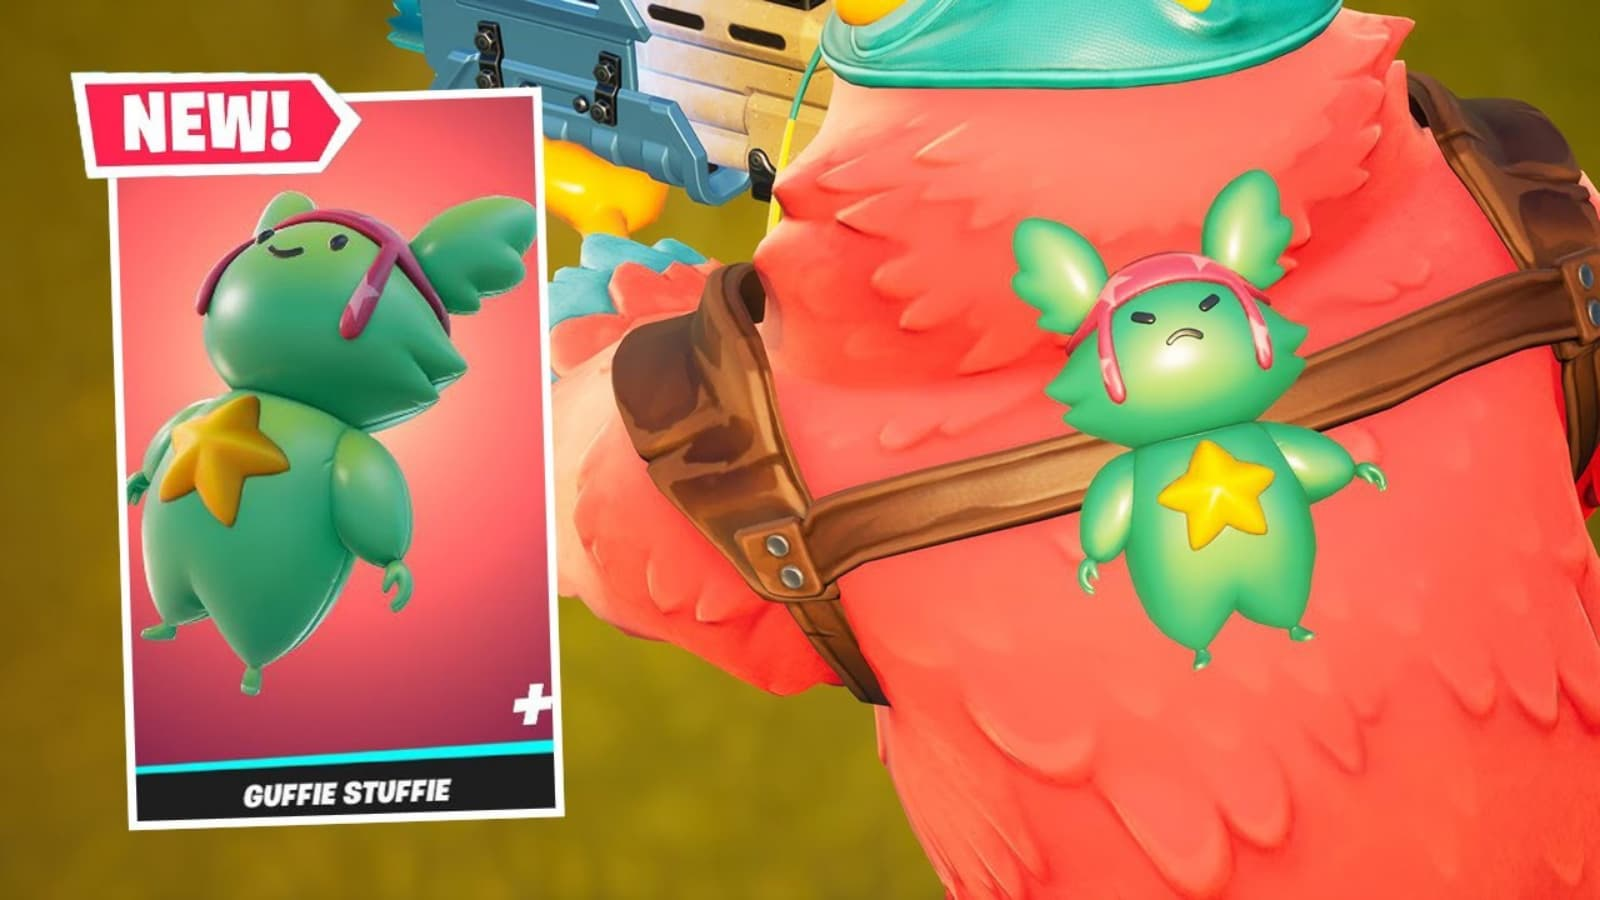 Fortnite Guffie Stuffie Back Bling: New Back Bling Price, and Other Details